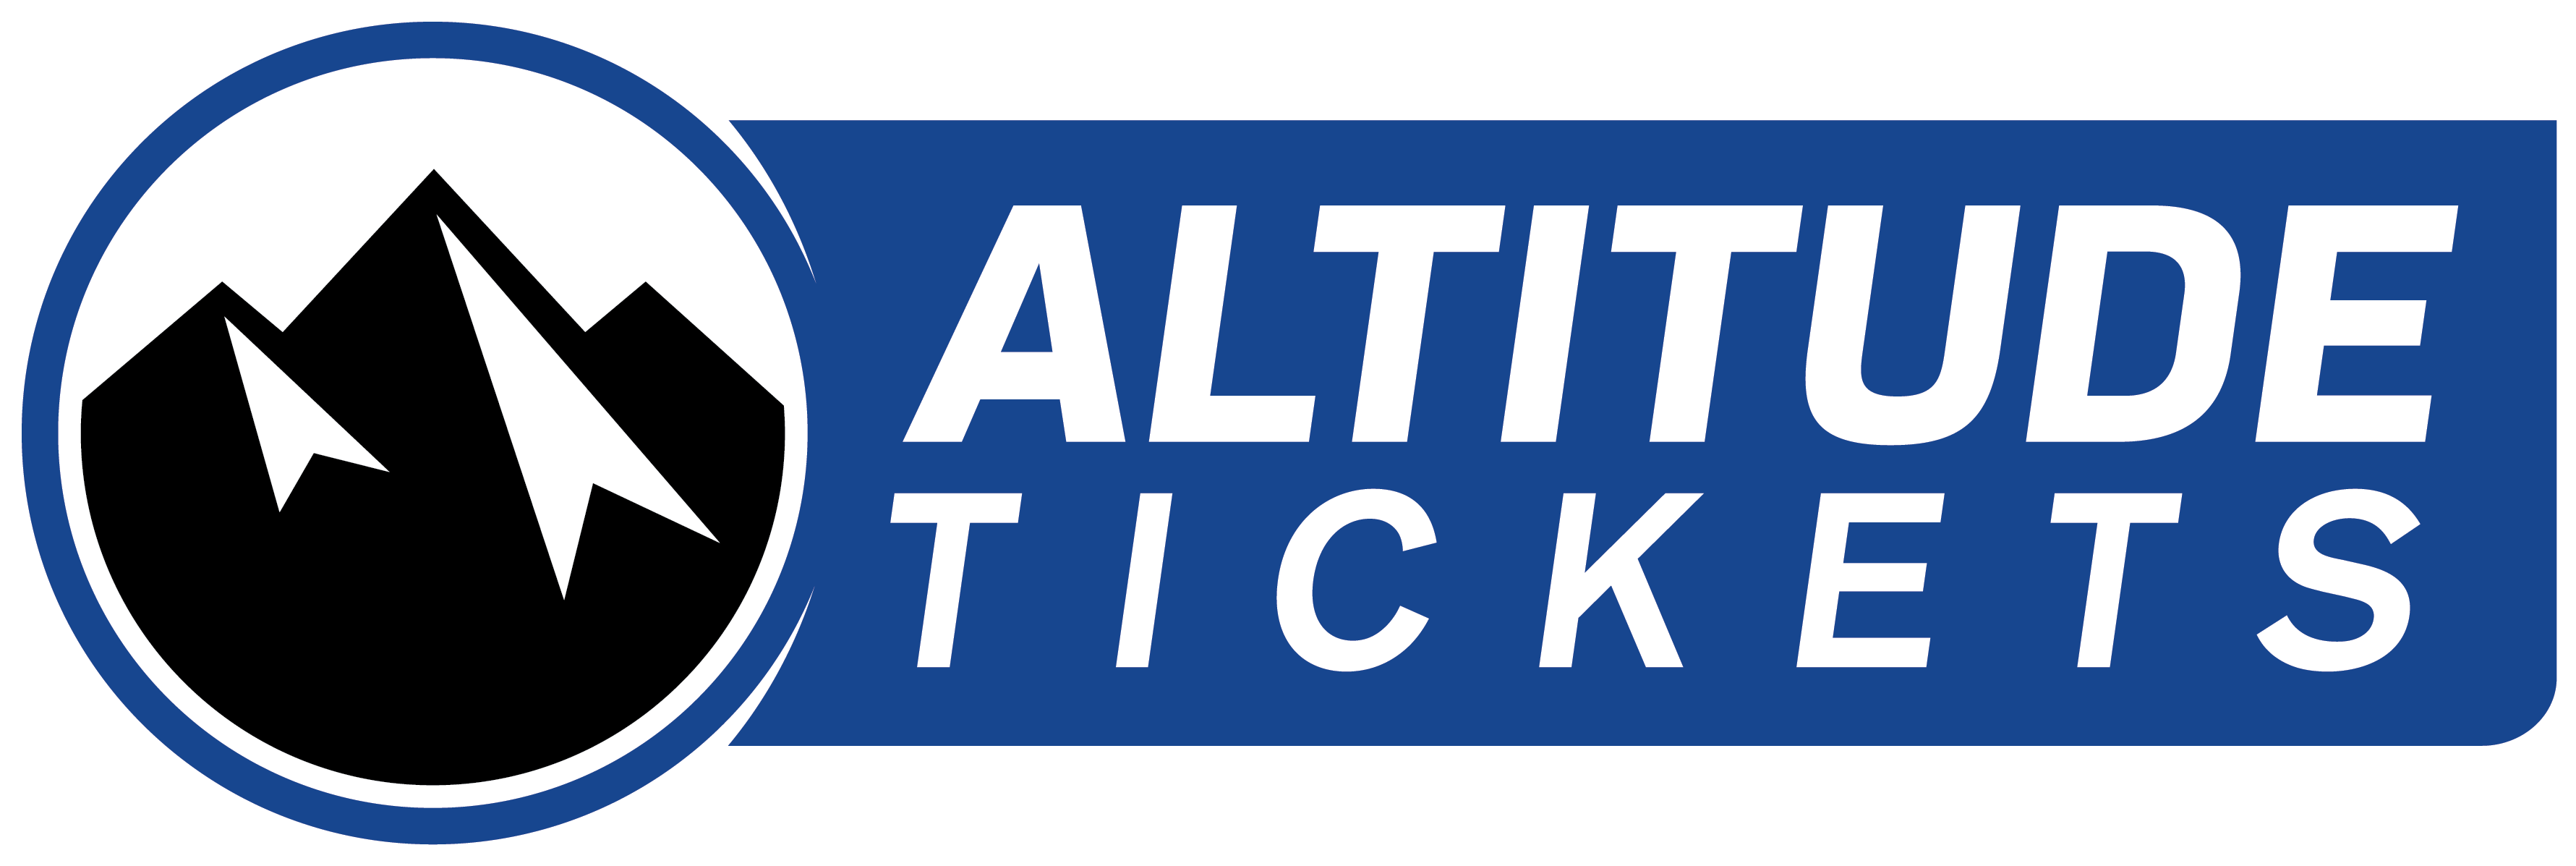 Altitude Tickets Customer Experience Portal Help Center home page